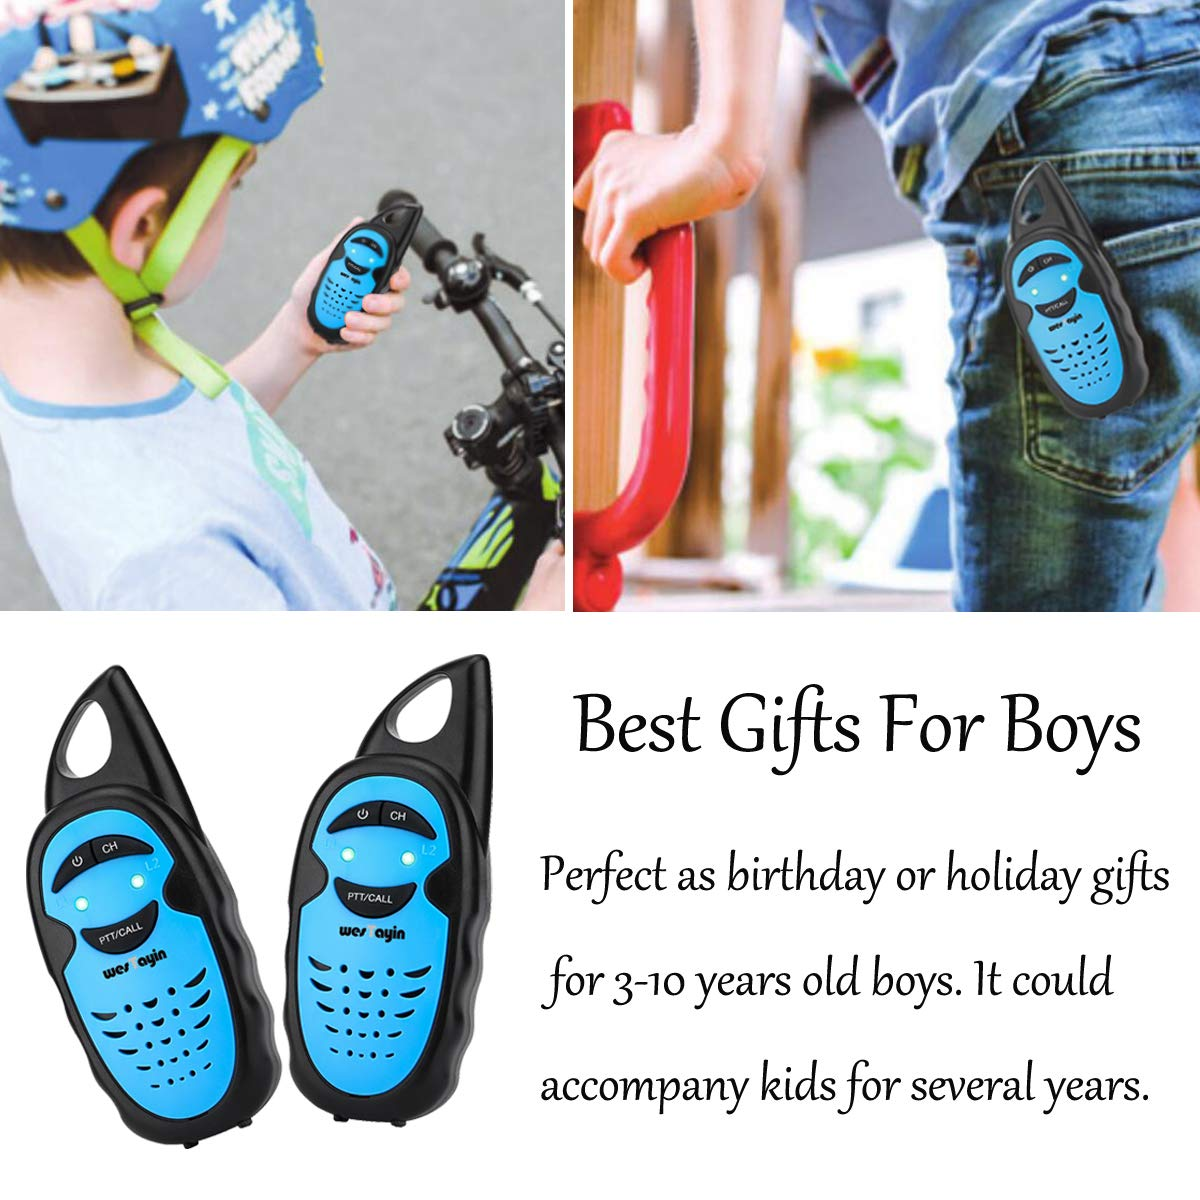 WES TAYIN Upgraded Walkie Talkies for Kids, Up to 2-Mile and 3 Channels Easy to Use Walkie Talkies for Toddlers, Toy Walkie Talkies for Little Hands Boys Gifts by WES TAYIN (Image #6)